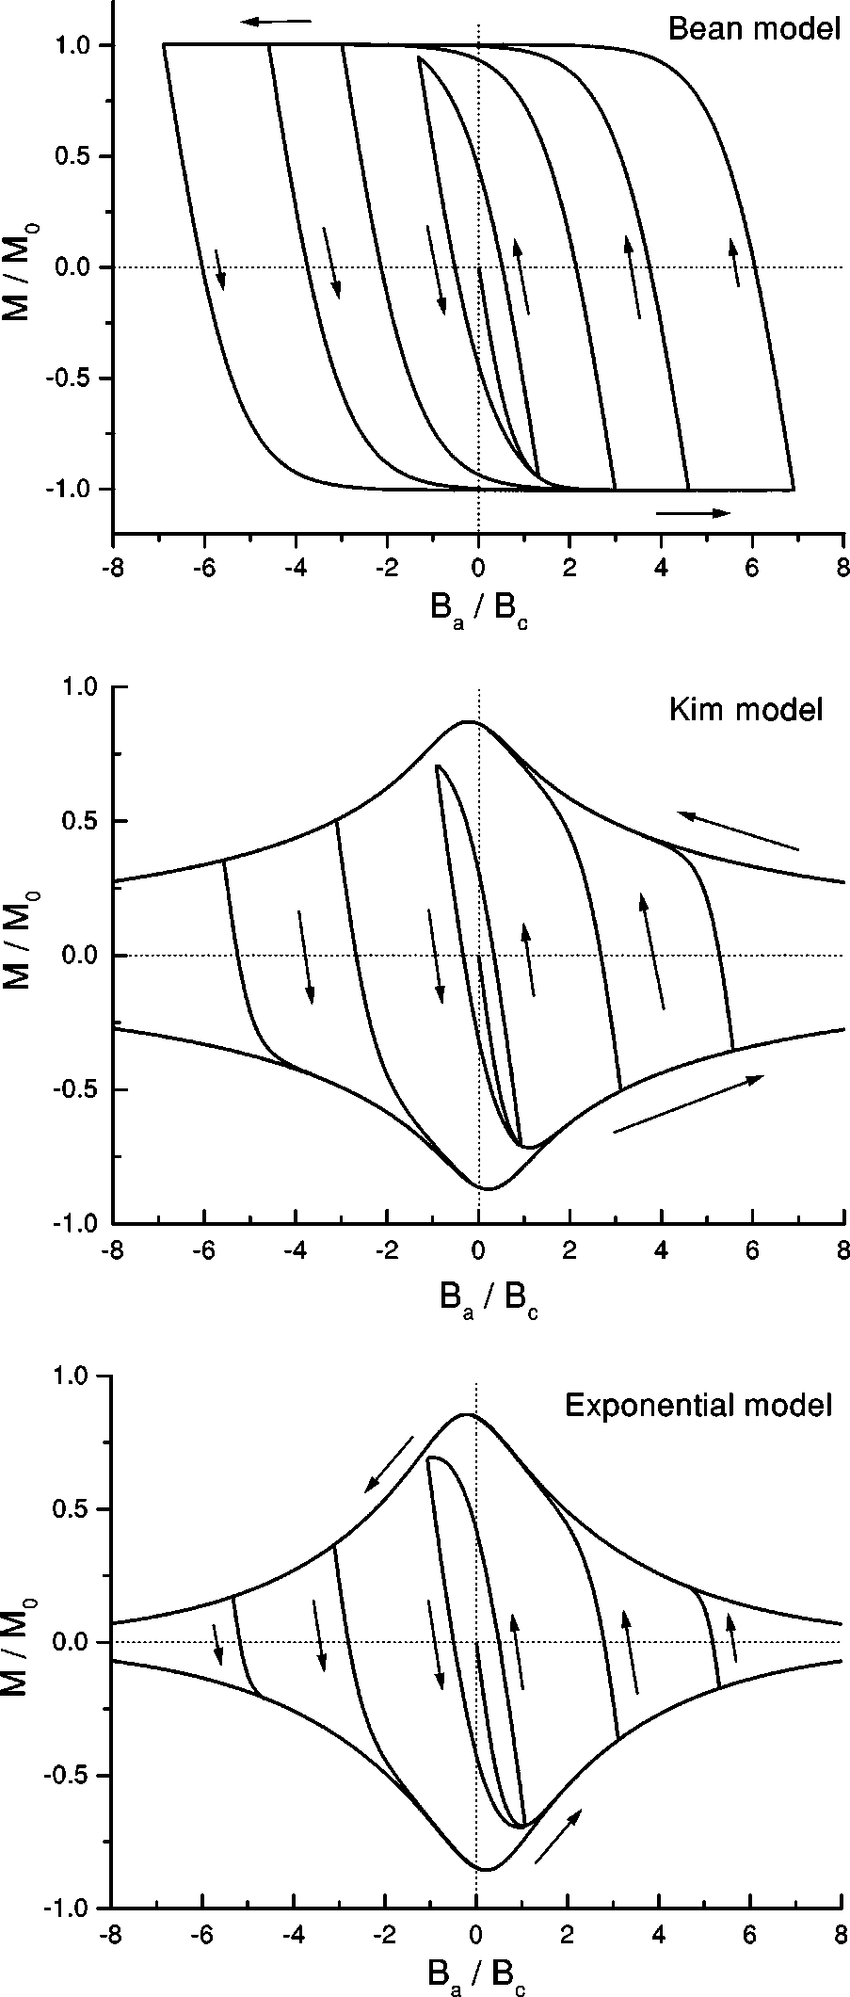 hight resolution of magnetization hysteresis loops for a thin disk for the bean model j c download scientific diagram